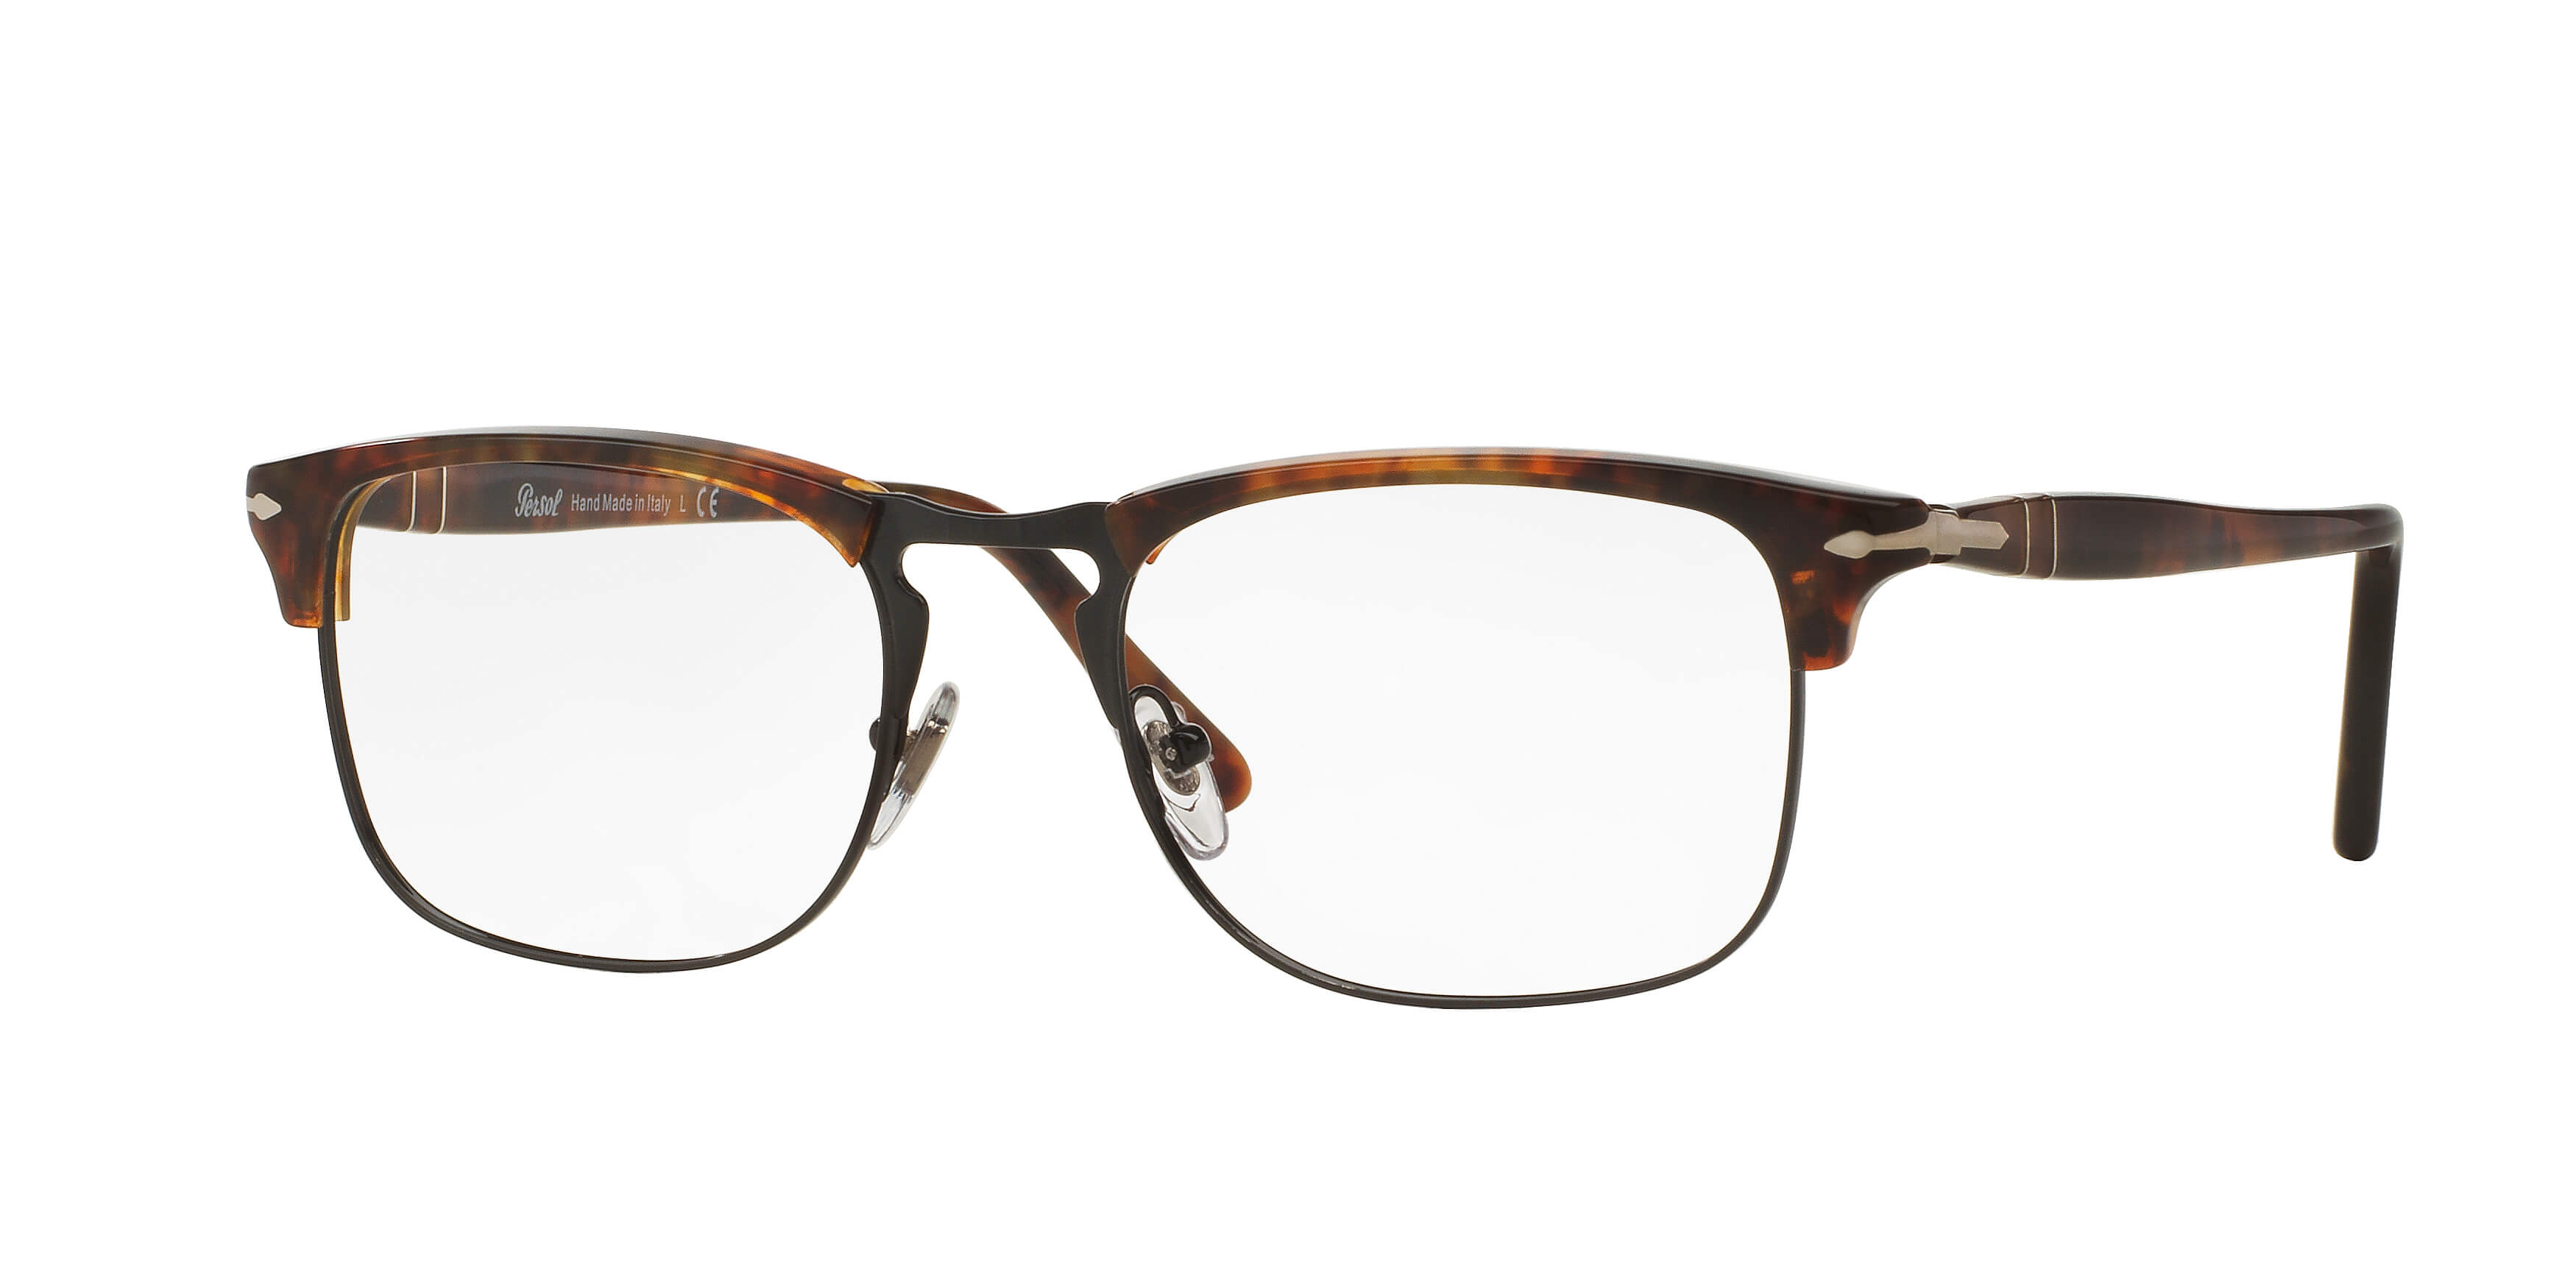 881a8ef19d41 New generation of Persol's iconic frames | David Clulow Opticians